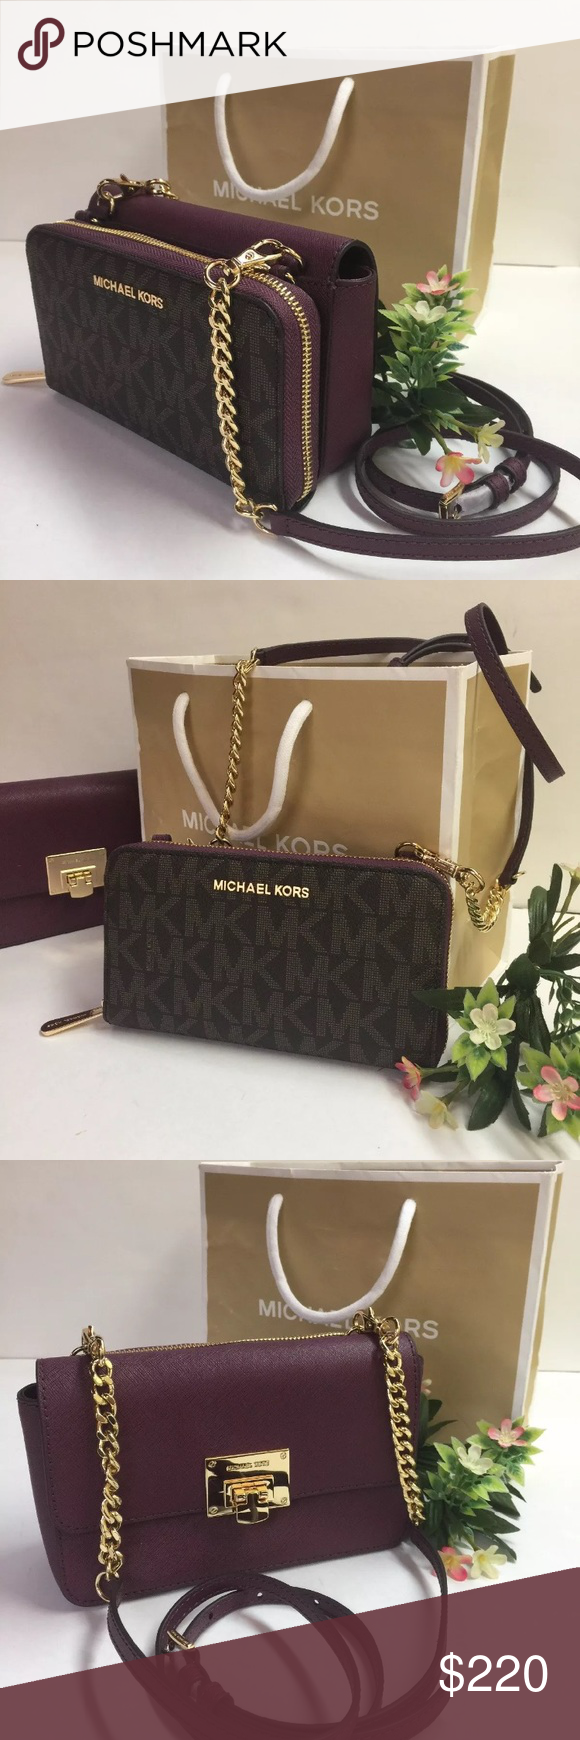 644cc846dd73 NWT Michael Kors Tina Wallet Clutch Crossbody NWT Michael Kors Tina Wallet  Clutch Crossbody Brown